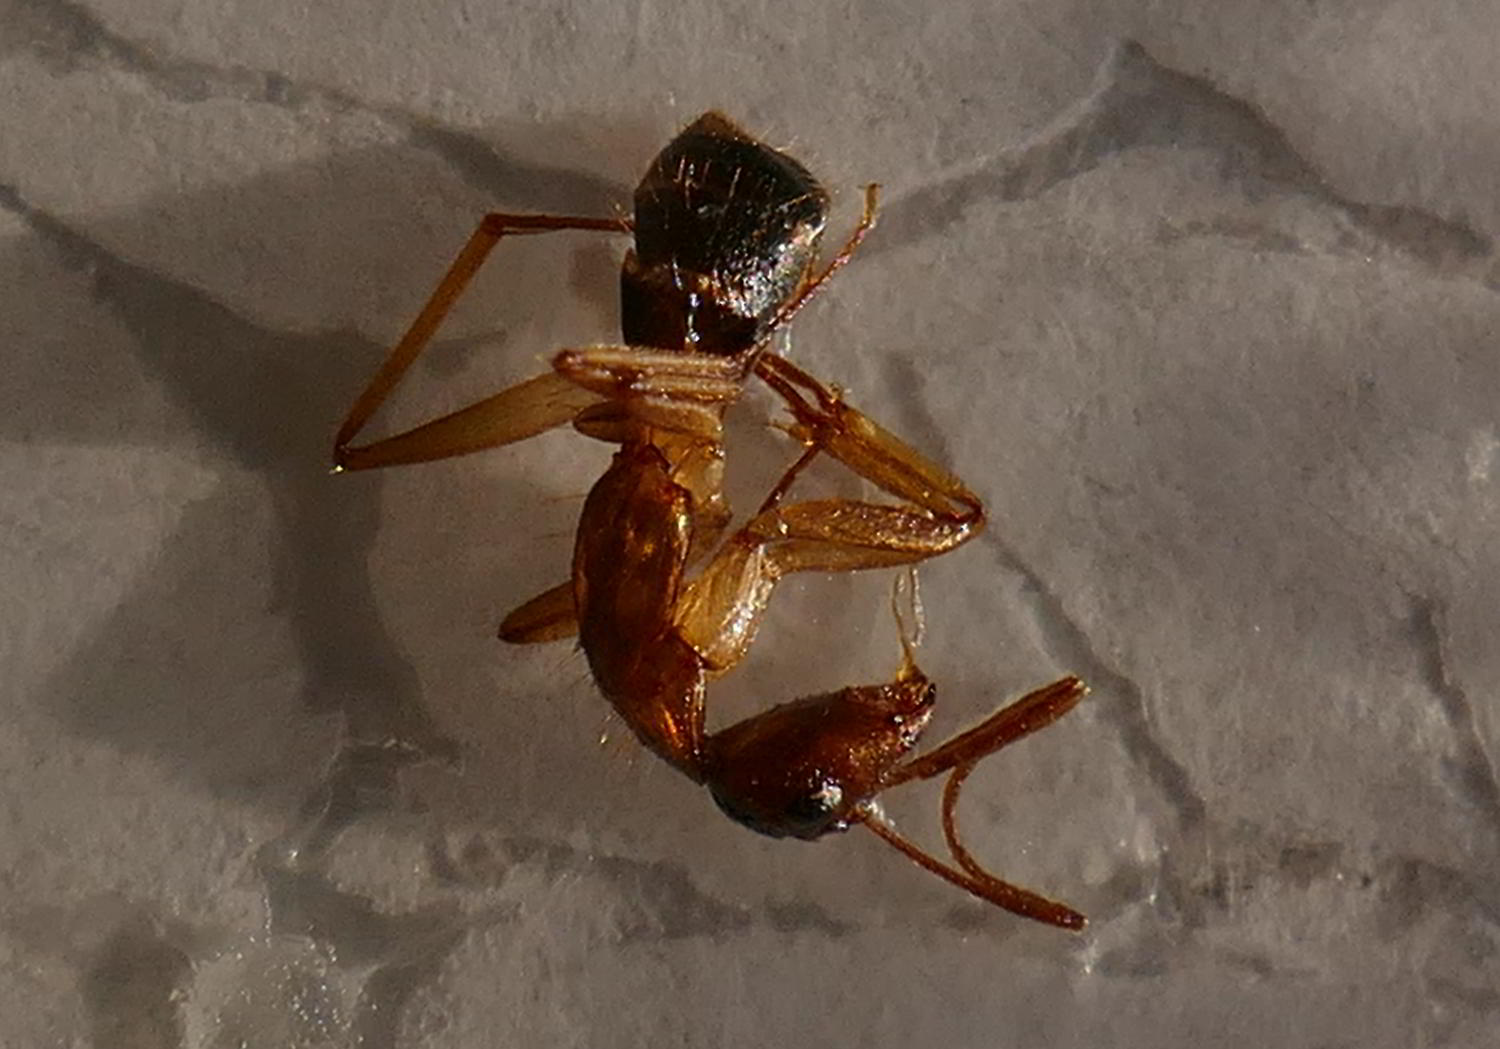 is this a fire ant